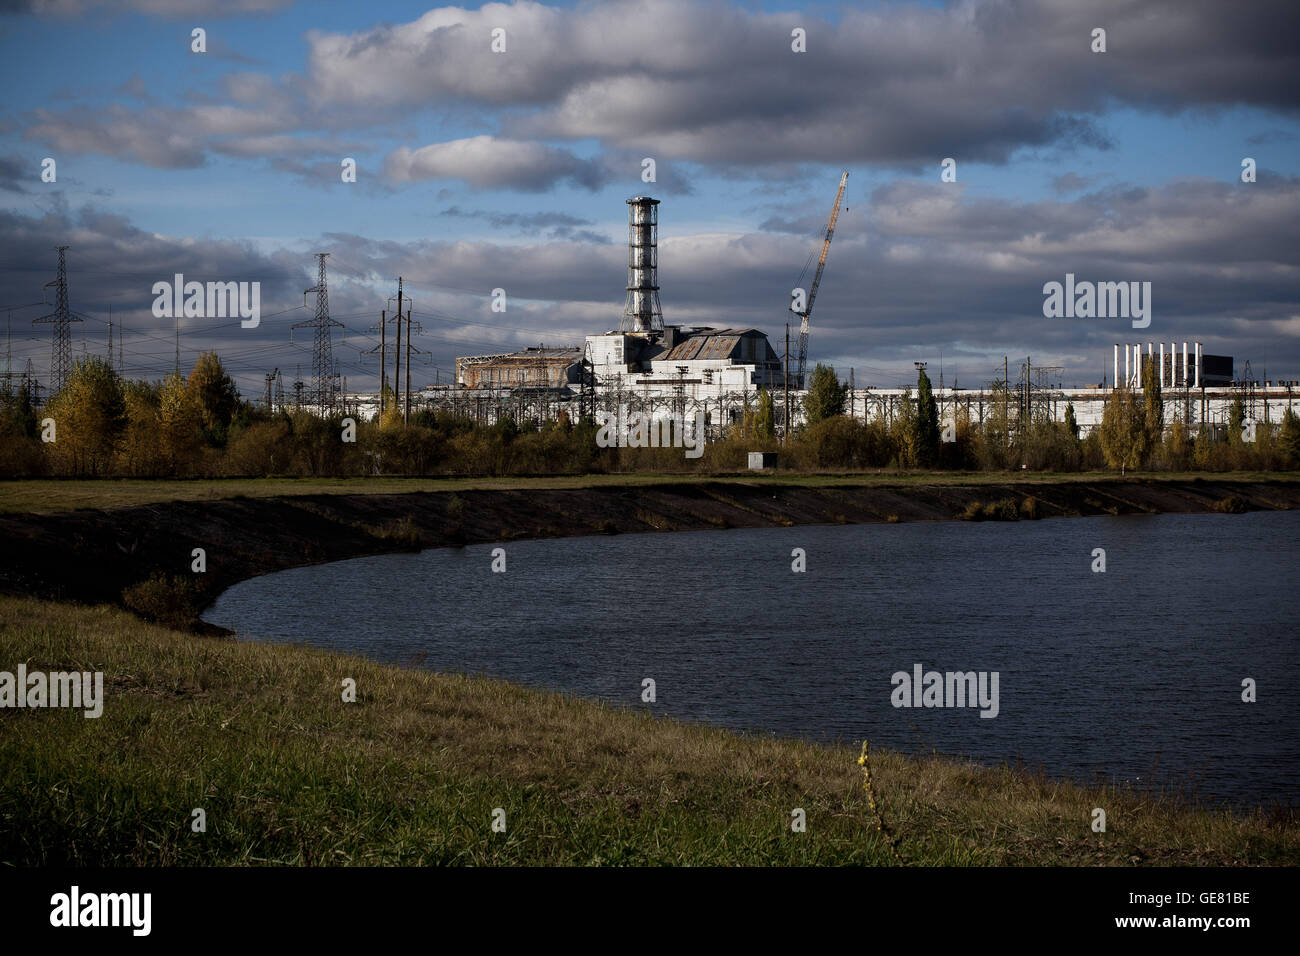 Chernobyl reactor #4 inside the exclusion zone, Ukraine. - Stock Image